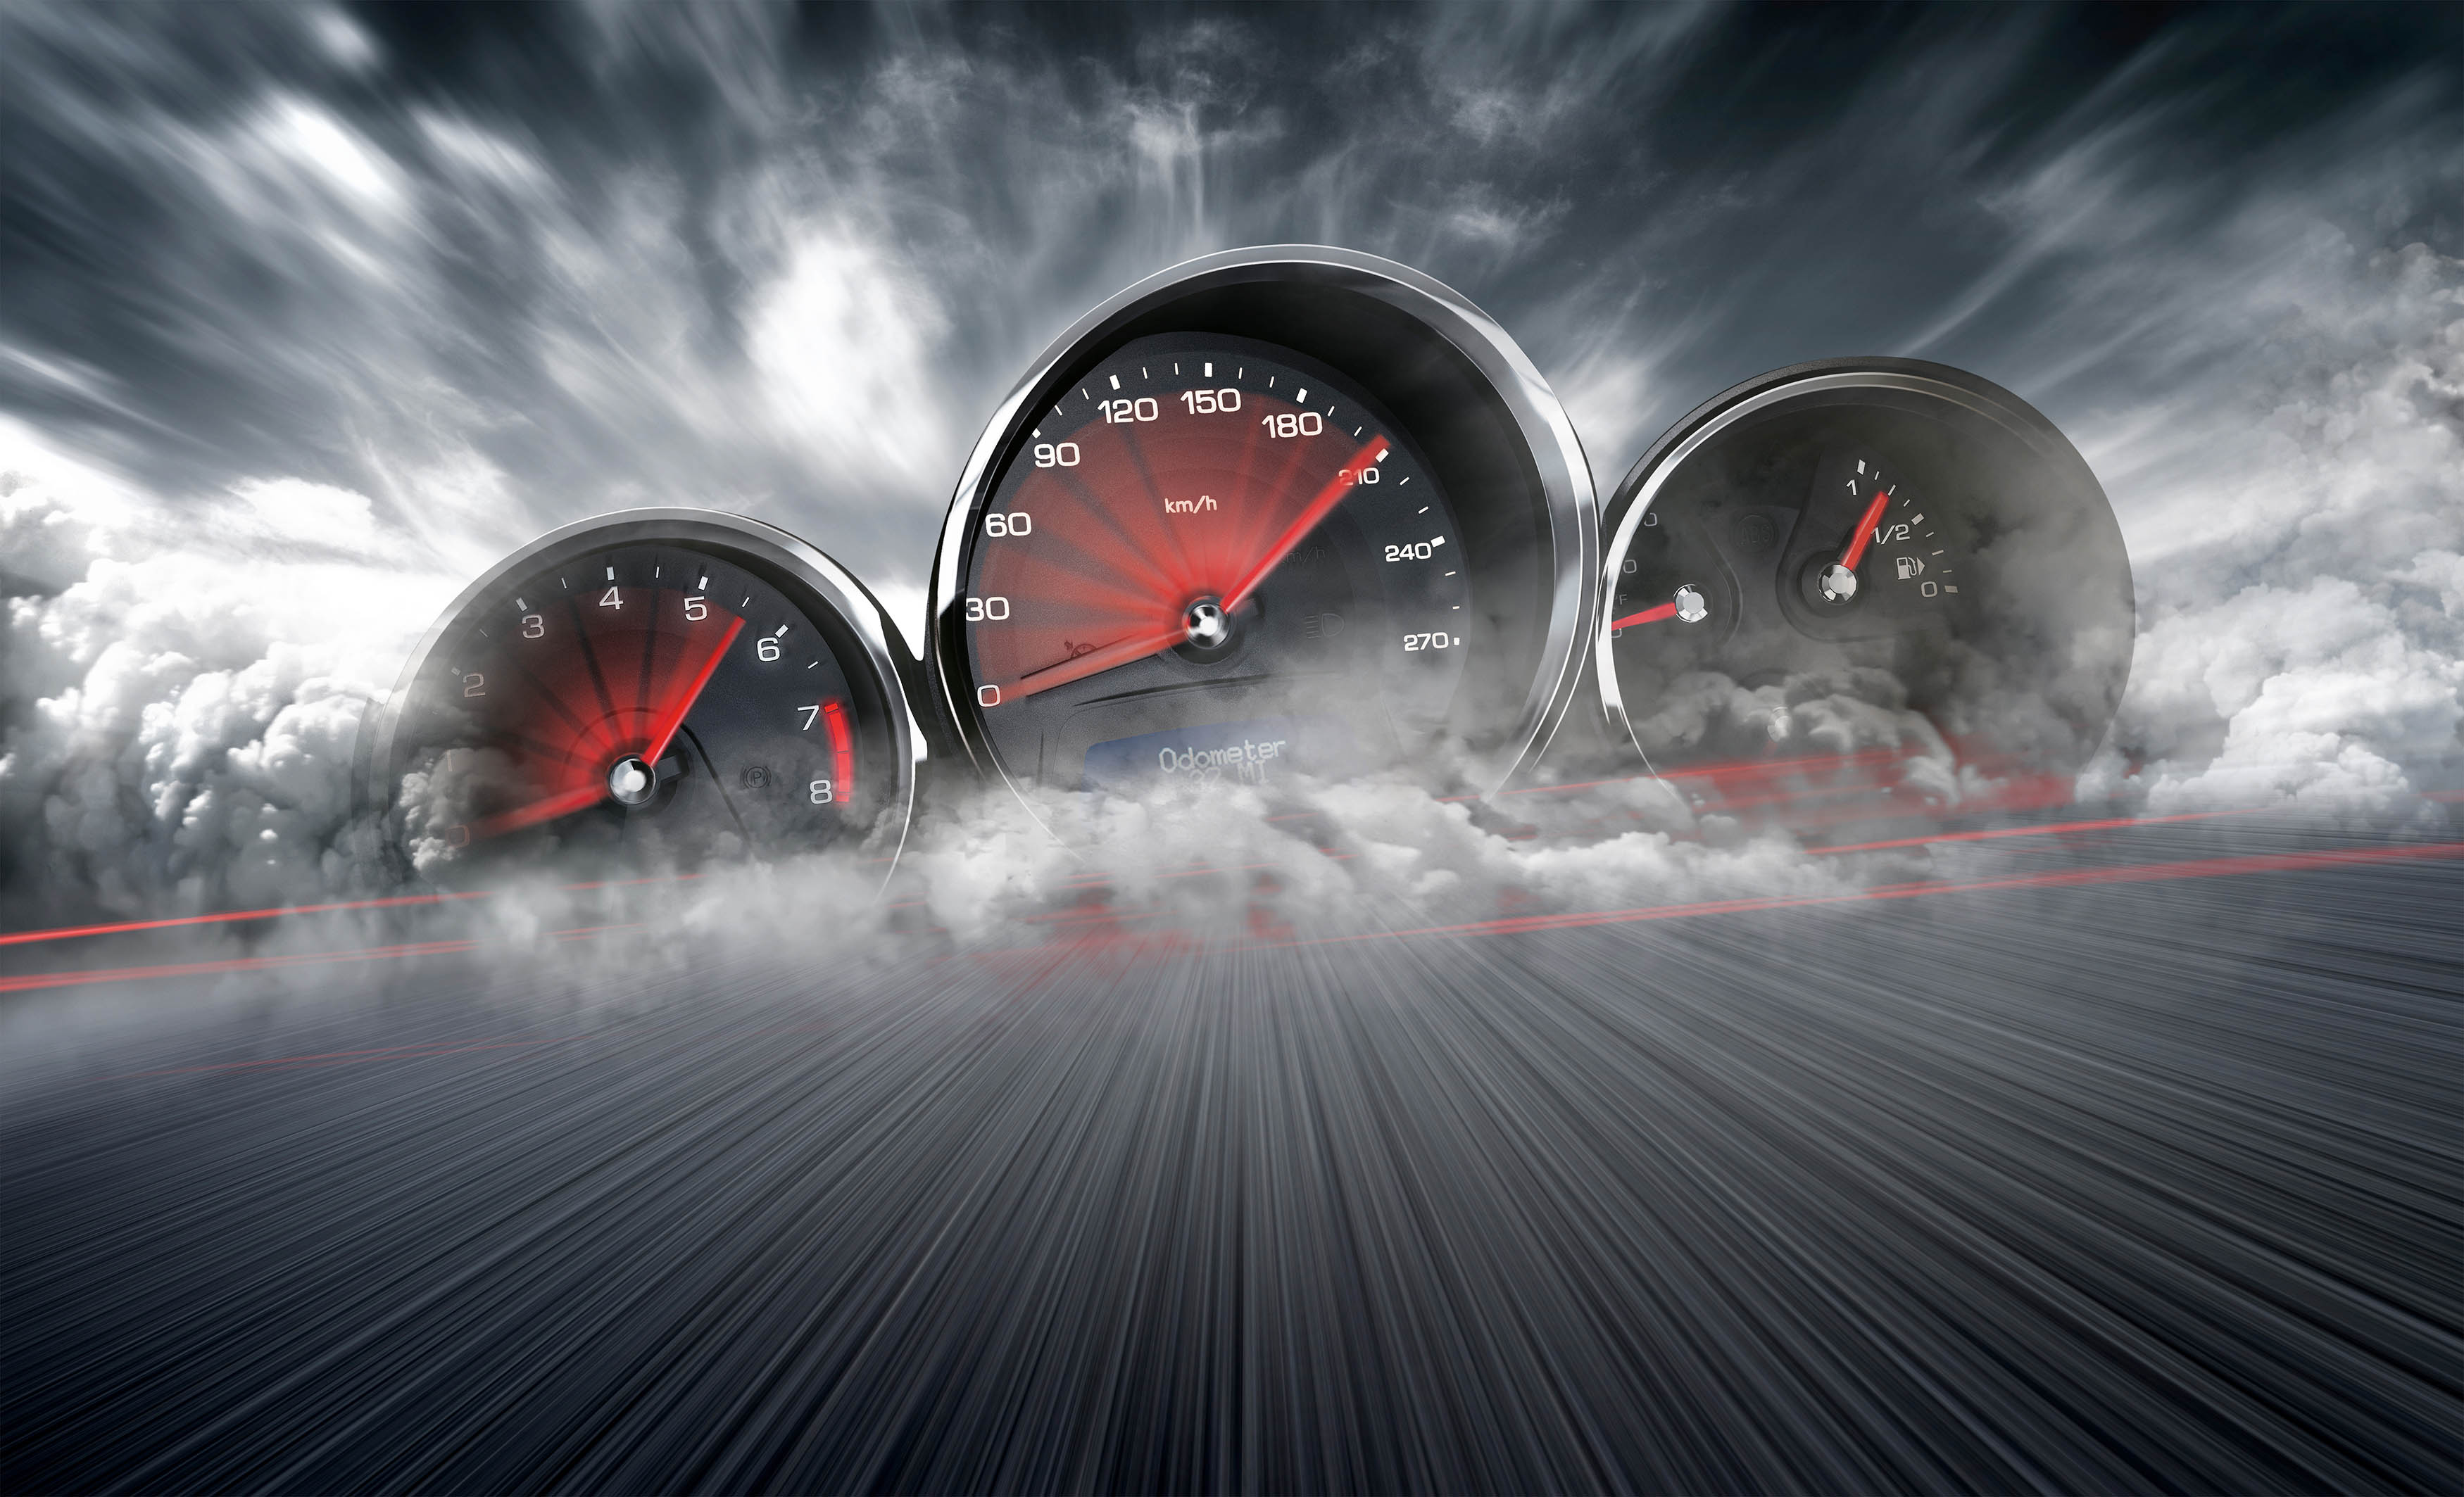 May DevOps Empower You: Speed Up Releases with Competence